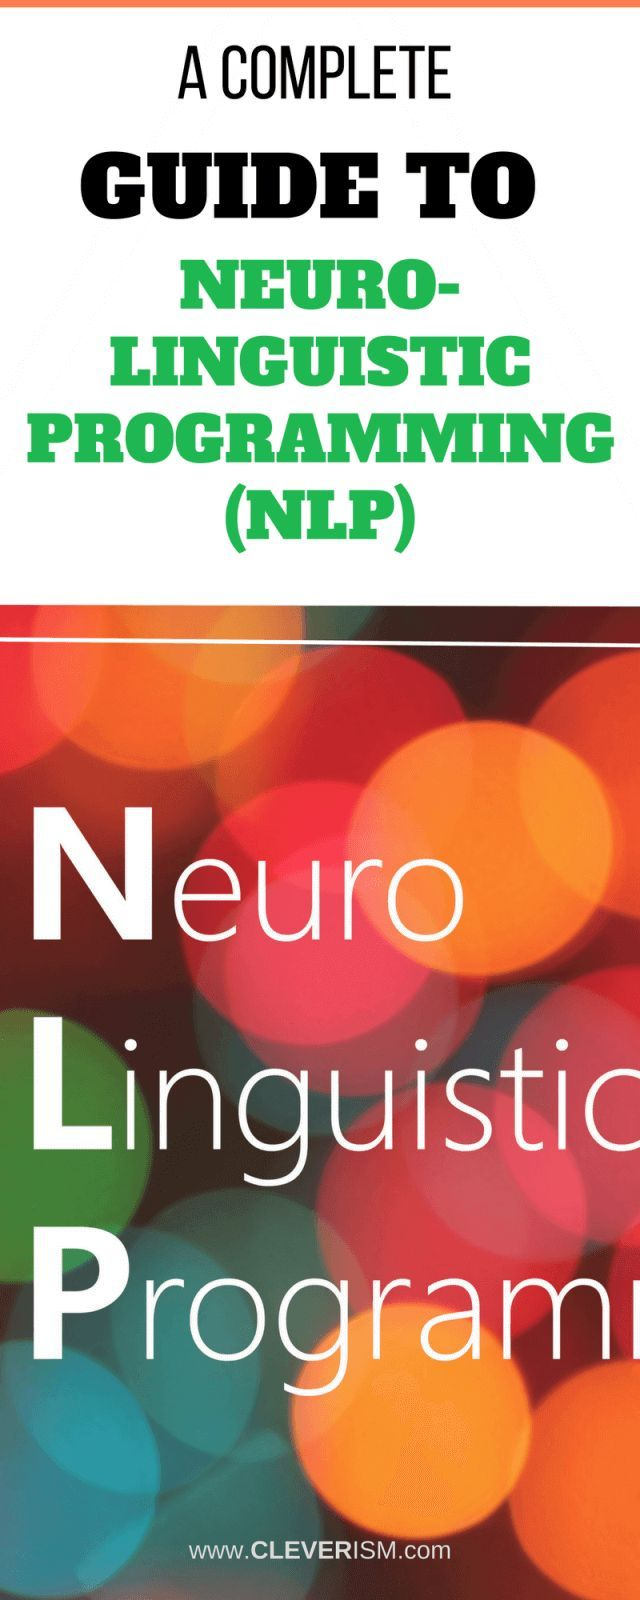 A Complete Guide to Neuro-Linguistic Programming (NLP